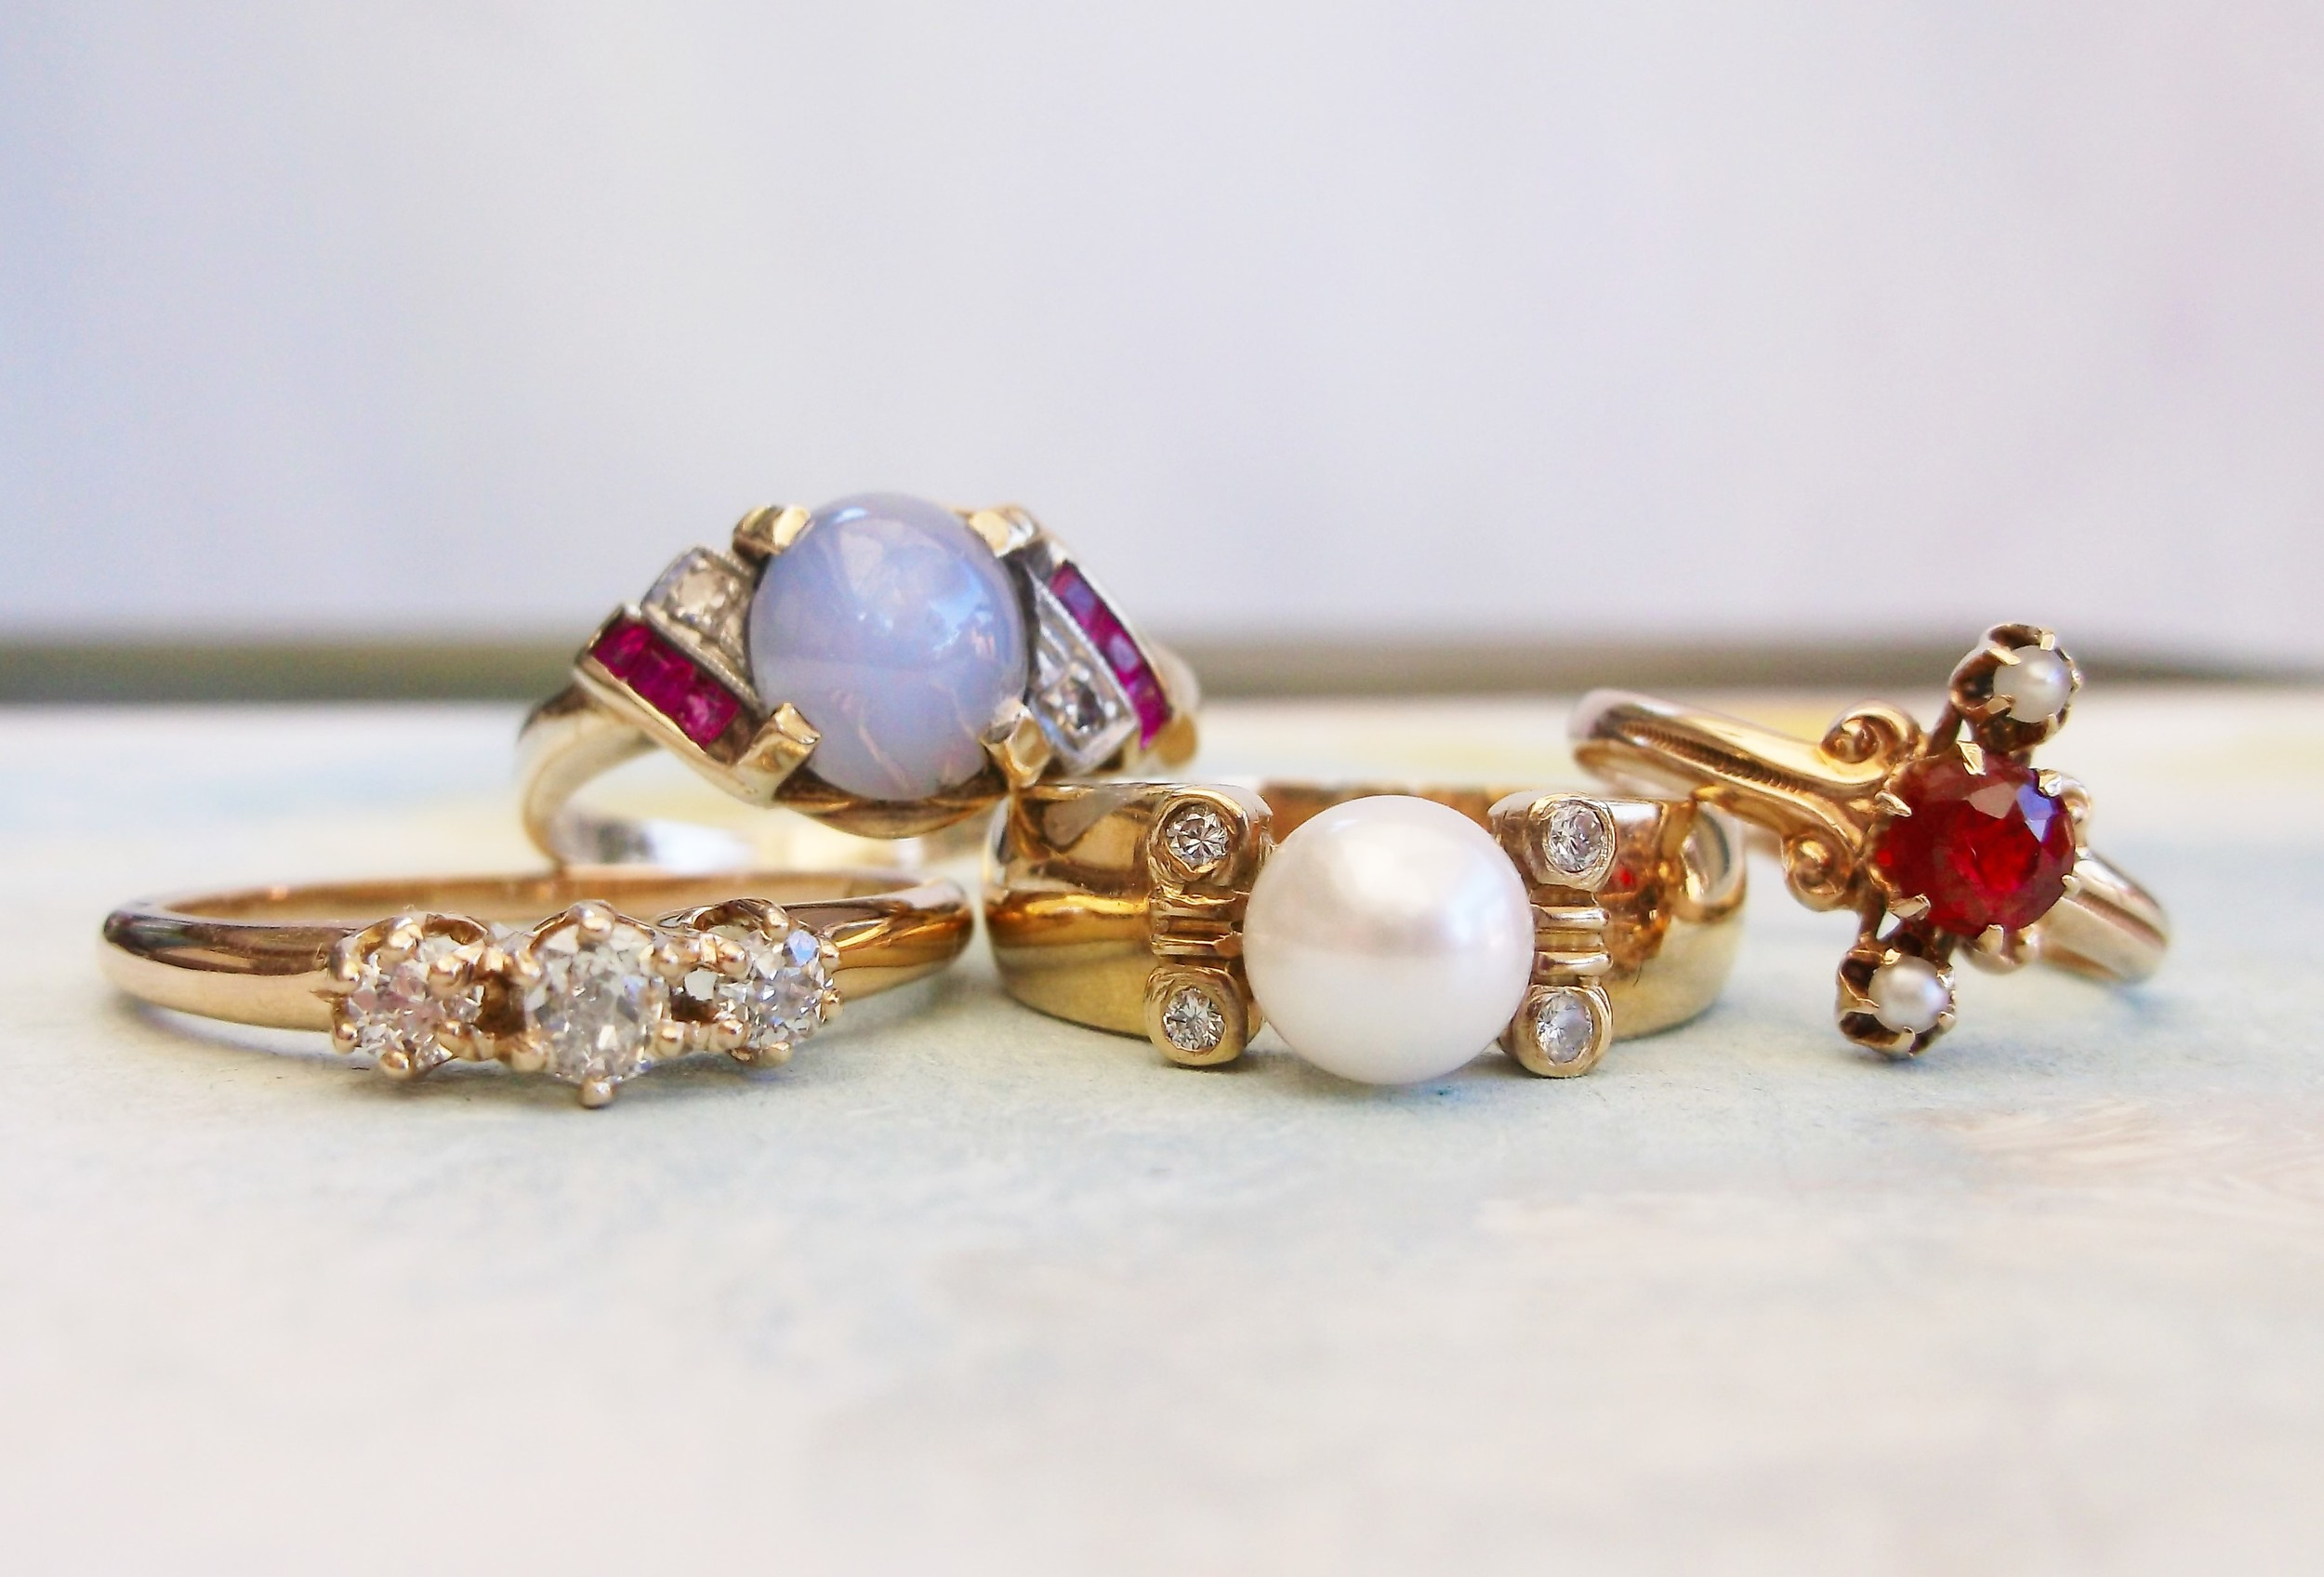 From Left to Right:  *SOLD - Three stone Old Mine cut diamond ring with 0.25 carats total weight in diamonds set in 14K yellow gold. *SOLD - Retro star sapphire, ruby and diamond ring set in 10K yellow gold. *SOLD - 18K yellow gold, pearl and diamond ring. ... *SOLD - Victorian pearl and garnet doublet ring set in 14K yellow gold.